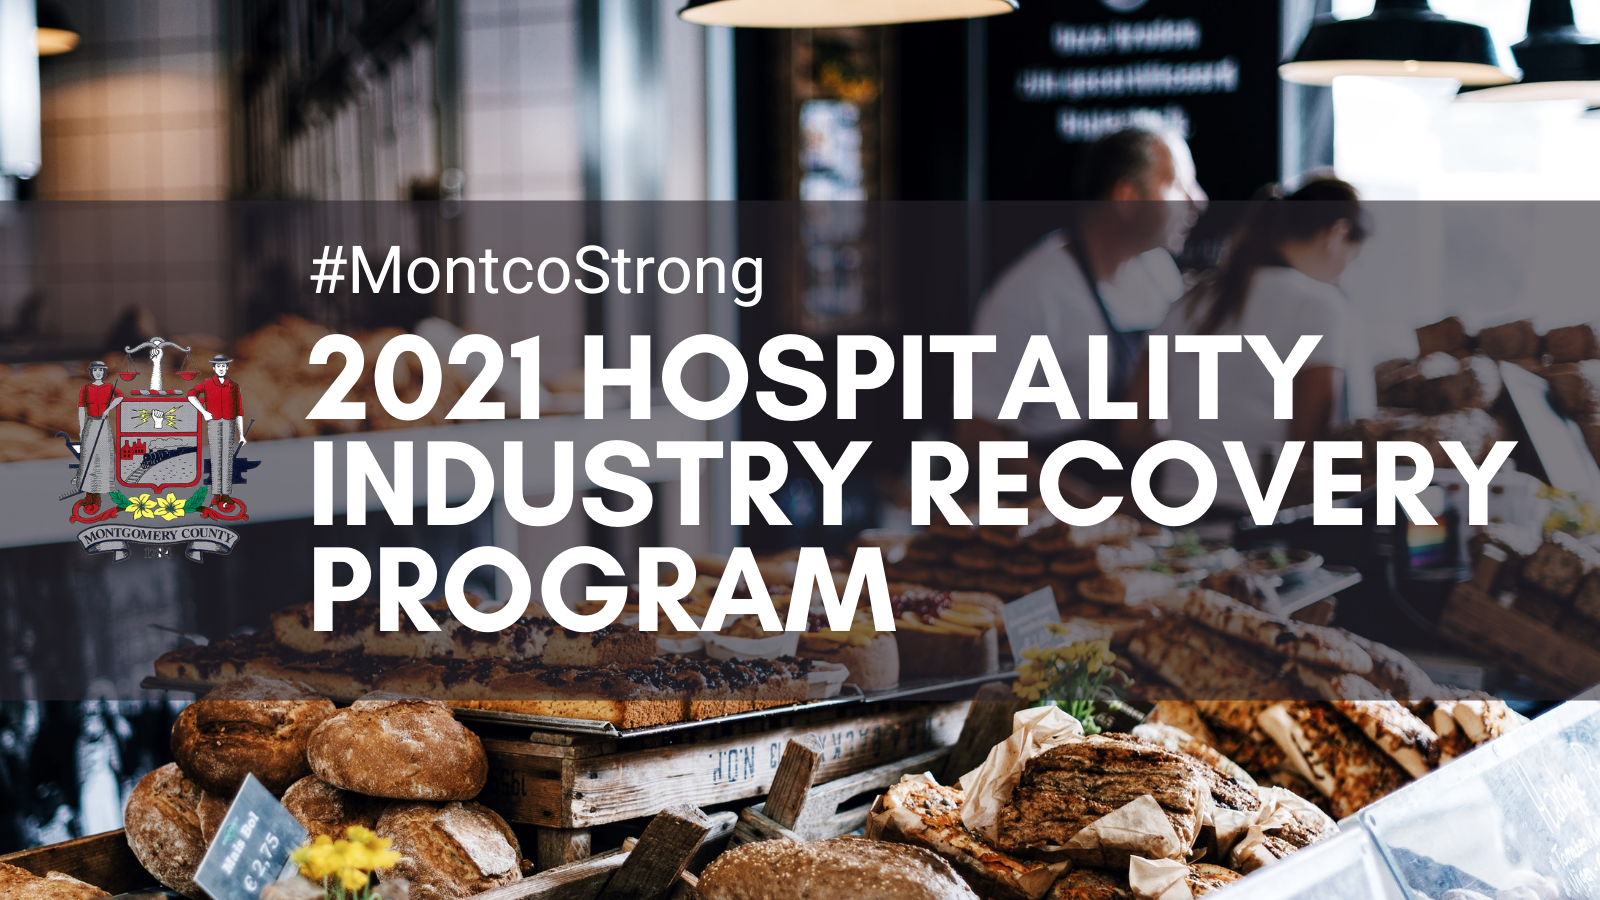 2021 MontcoStrong Hospitality Industry Program